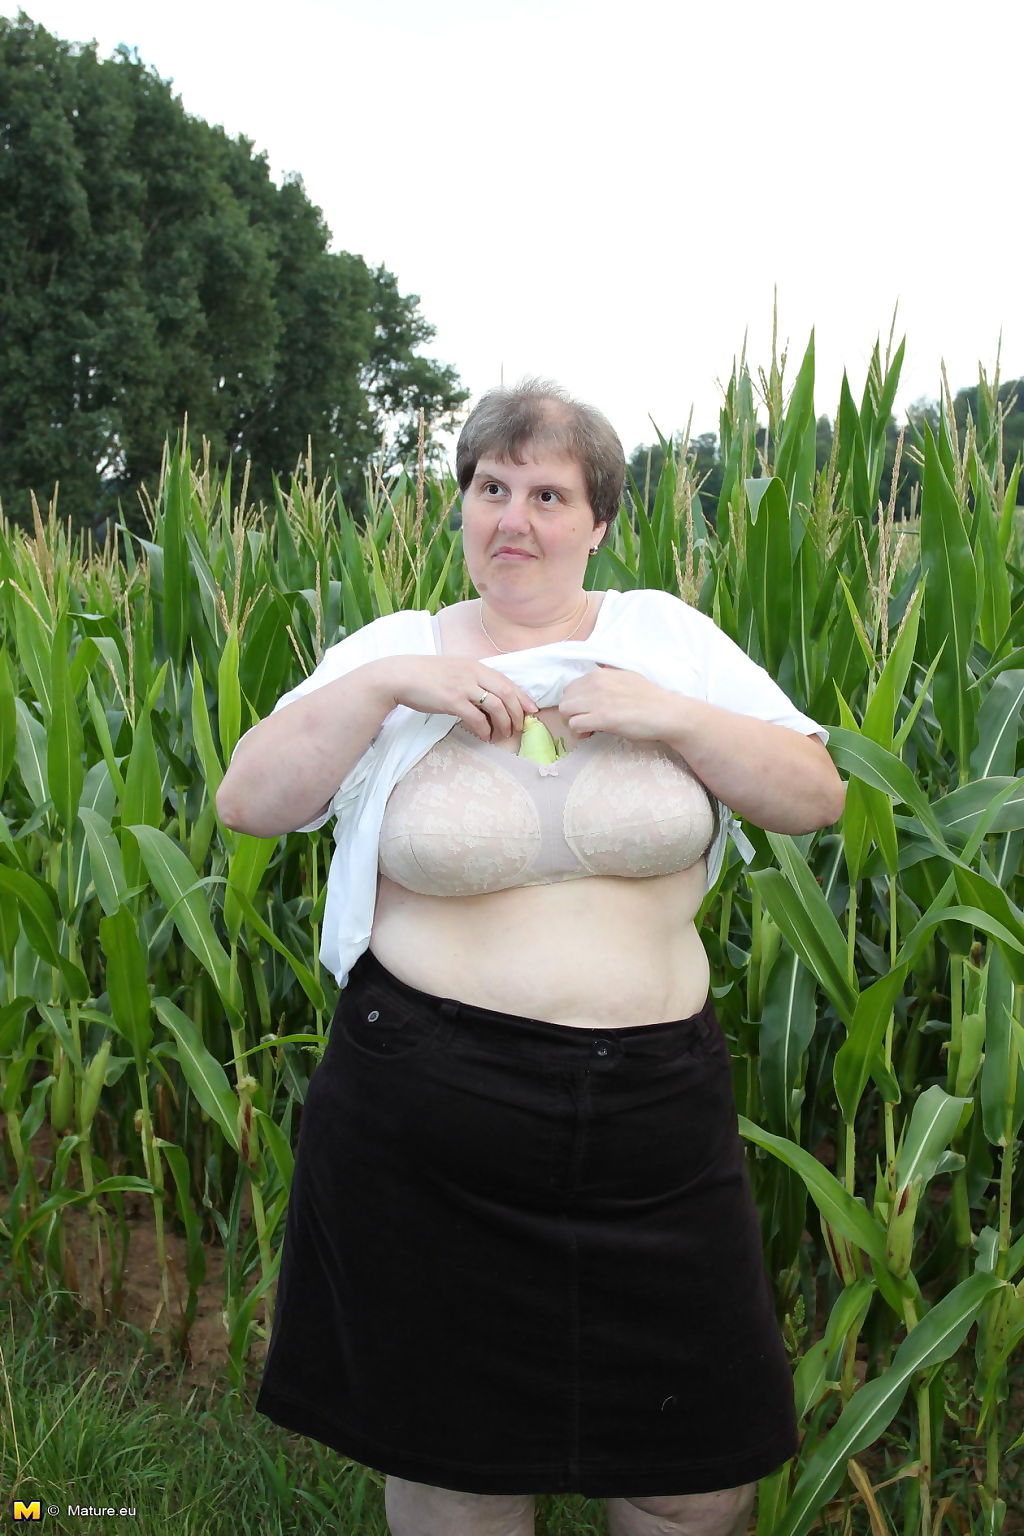 Big mature slut playing in a corn field - part 3327